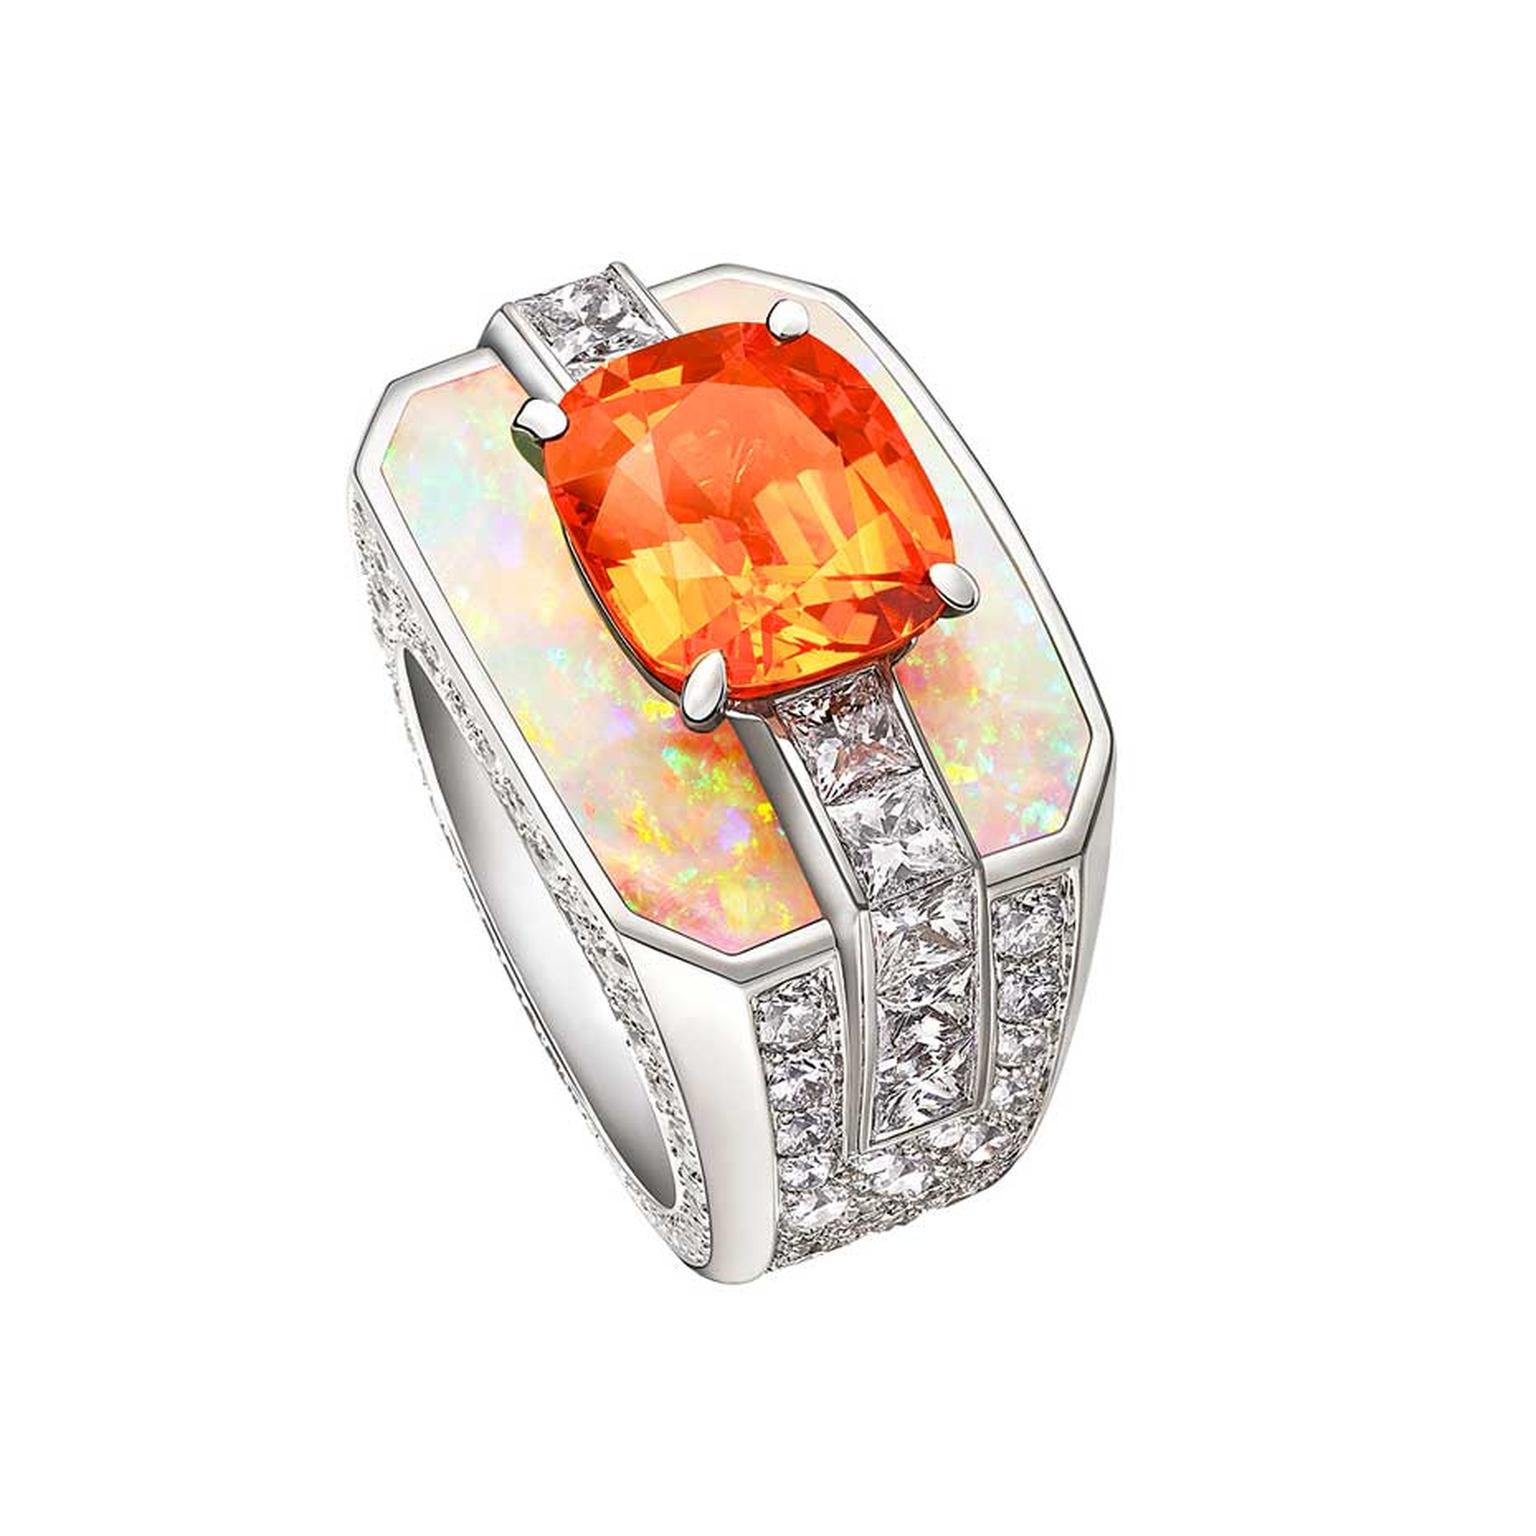 Louis Vuitton white gold ring with a mandarin garnet, opals and diamonds from the Chain Attraction collection.